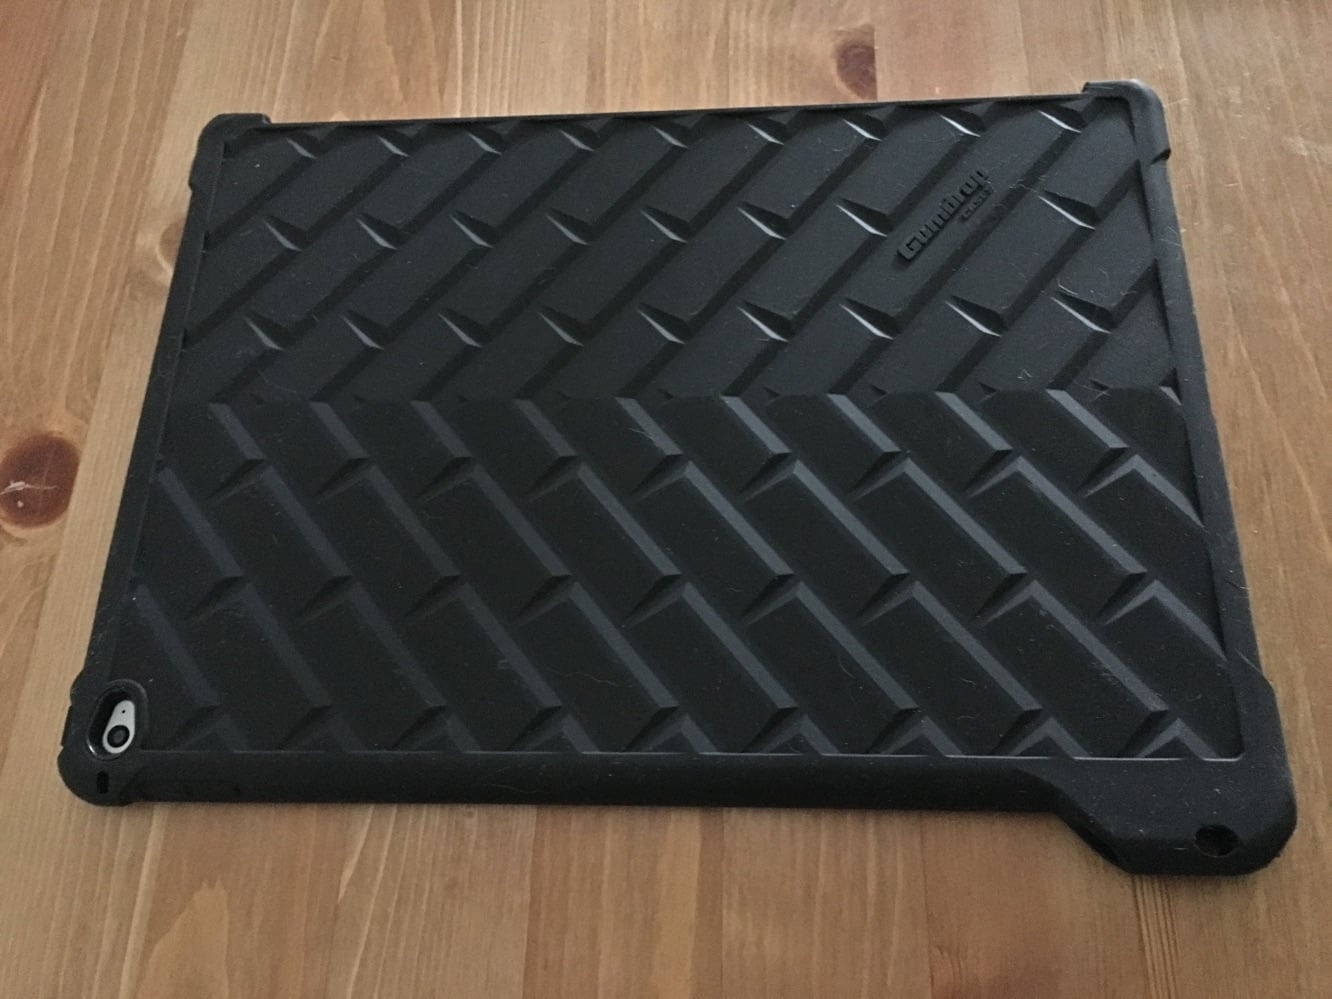 Review: Gumdrop Cases DropTech Case for iPad Pro